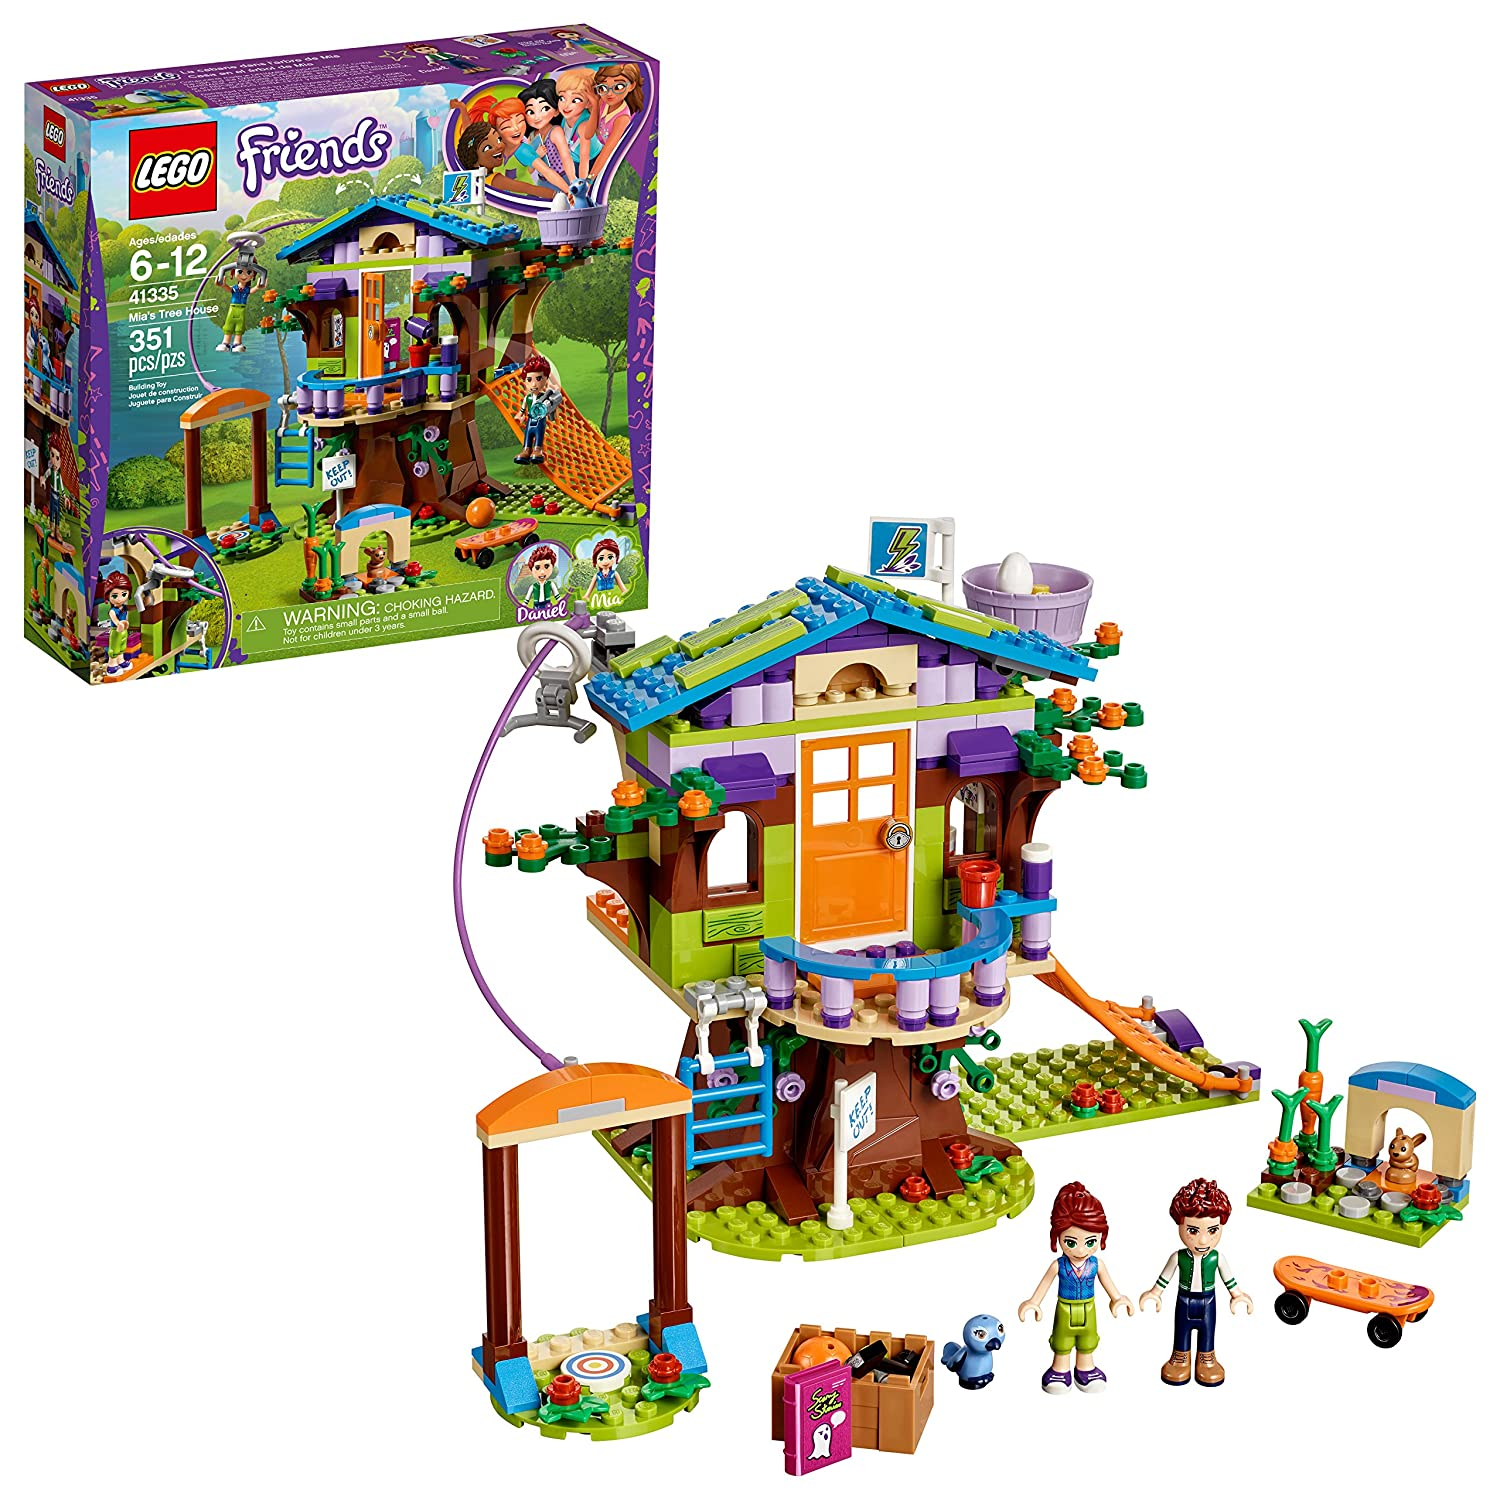 LEGO Friends Mia's Tree House.